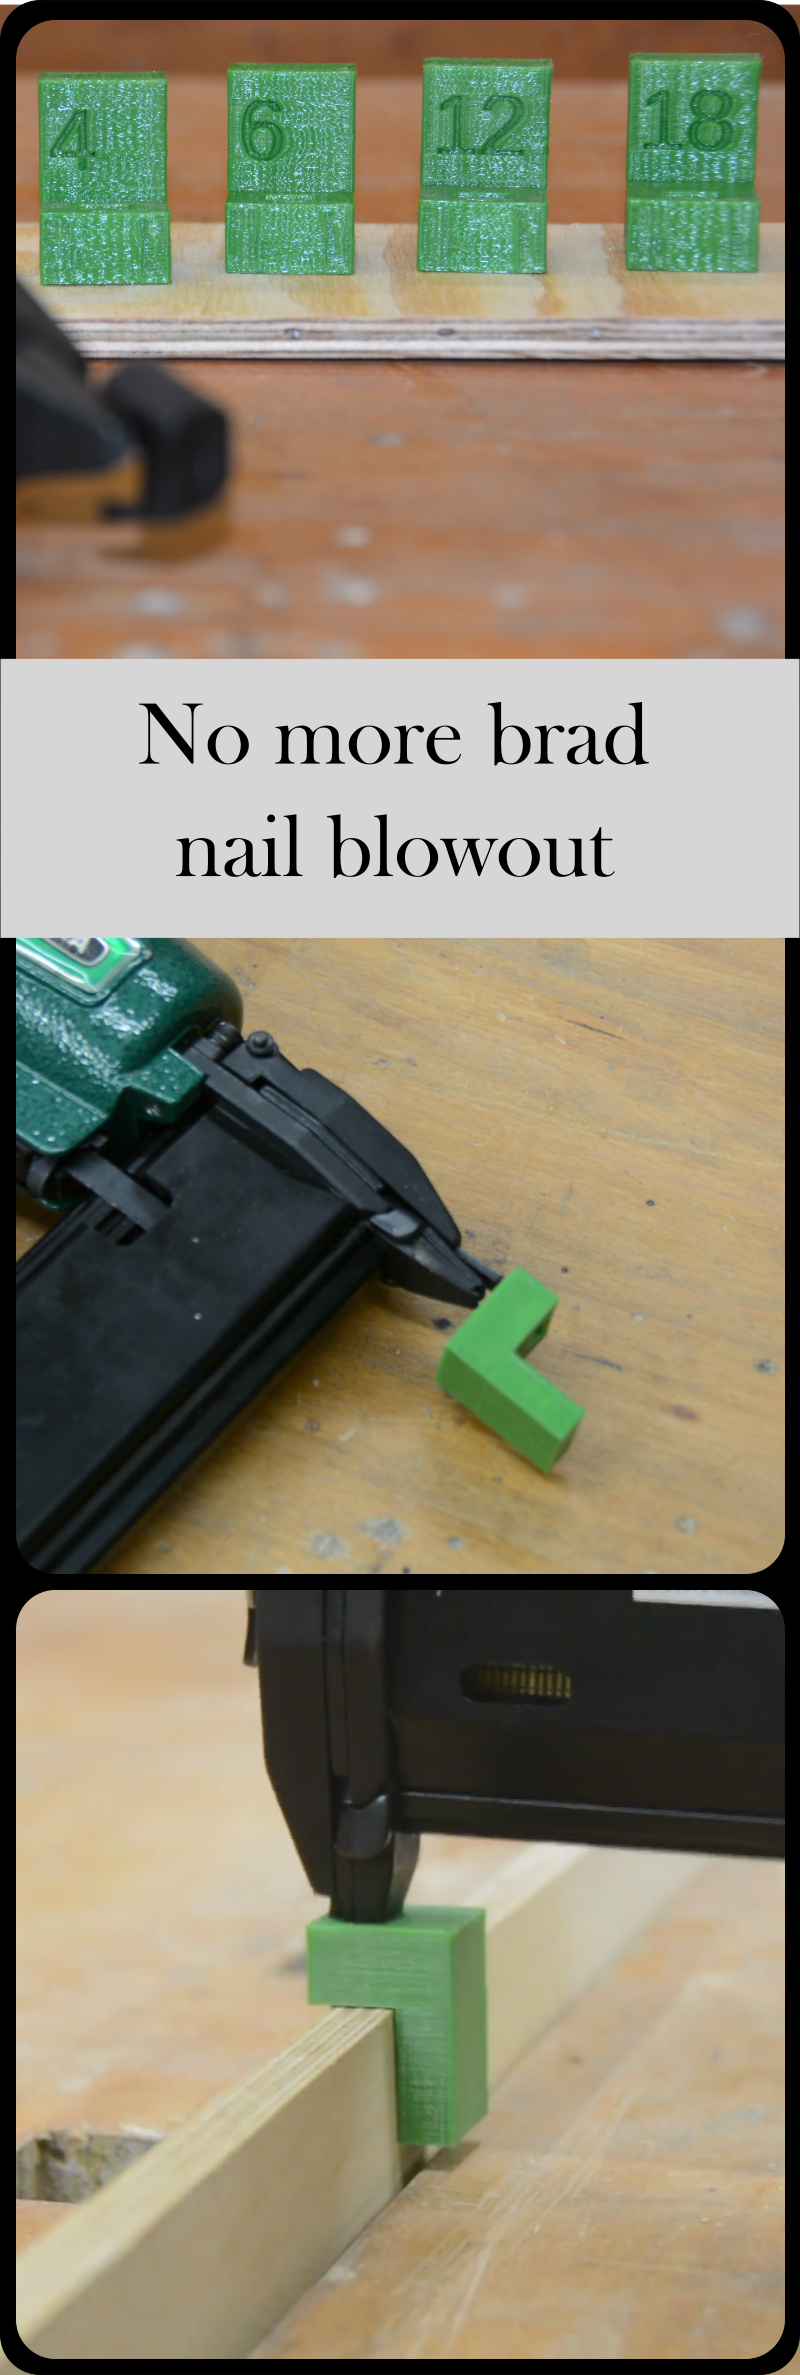 Avoiding nail blowout with a 3dprinted jig